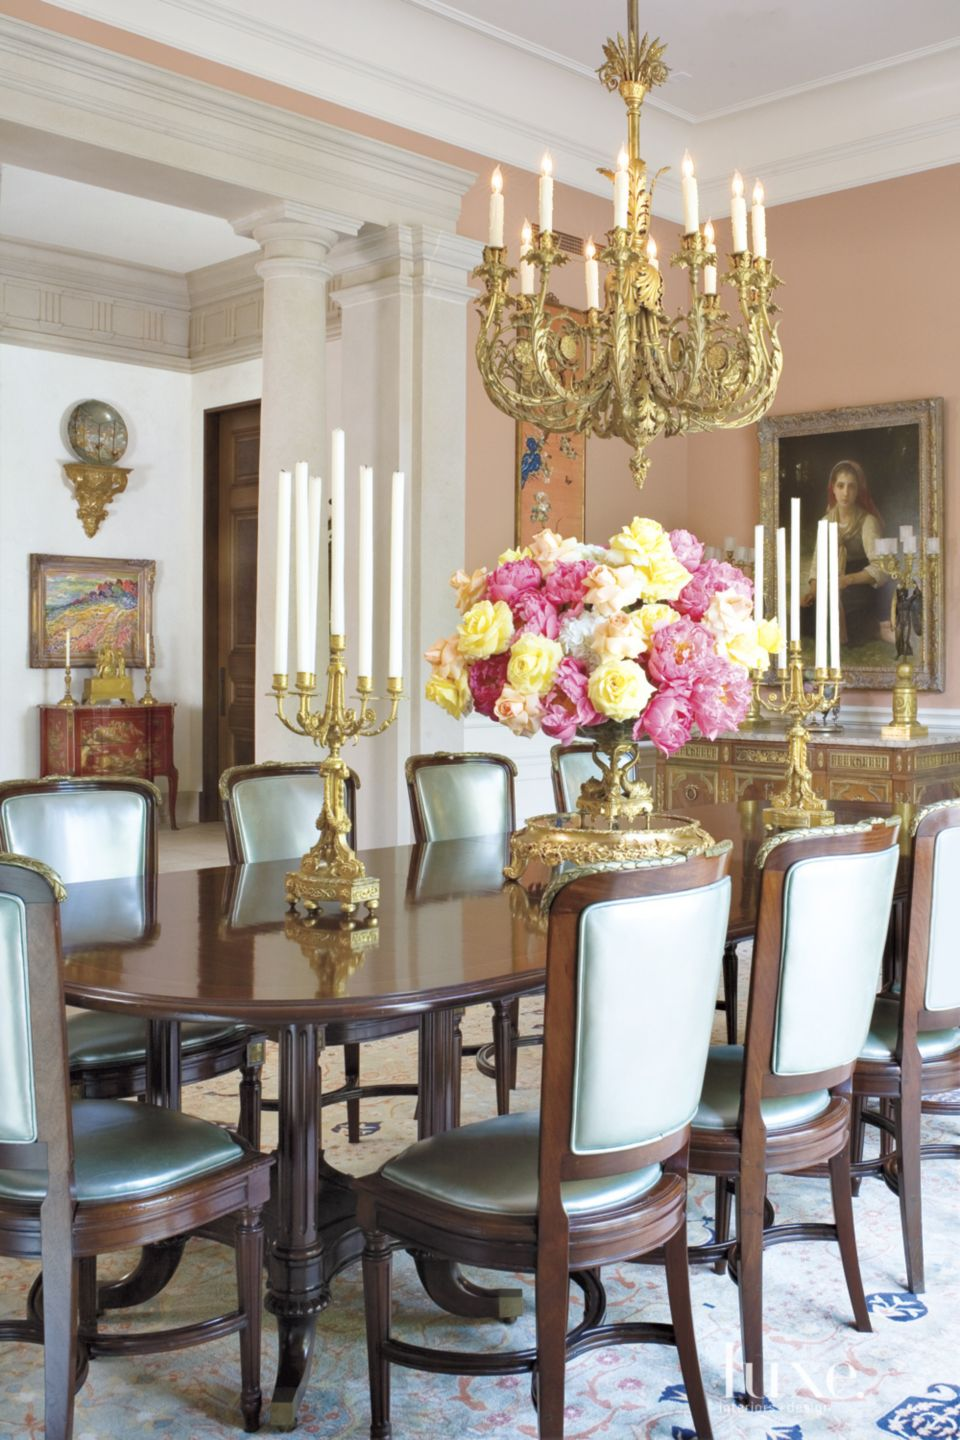 Traditional Pink Dining Room with Candle Chandelier